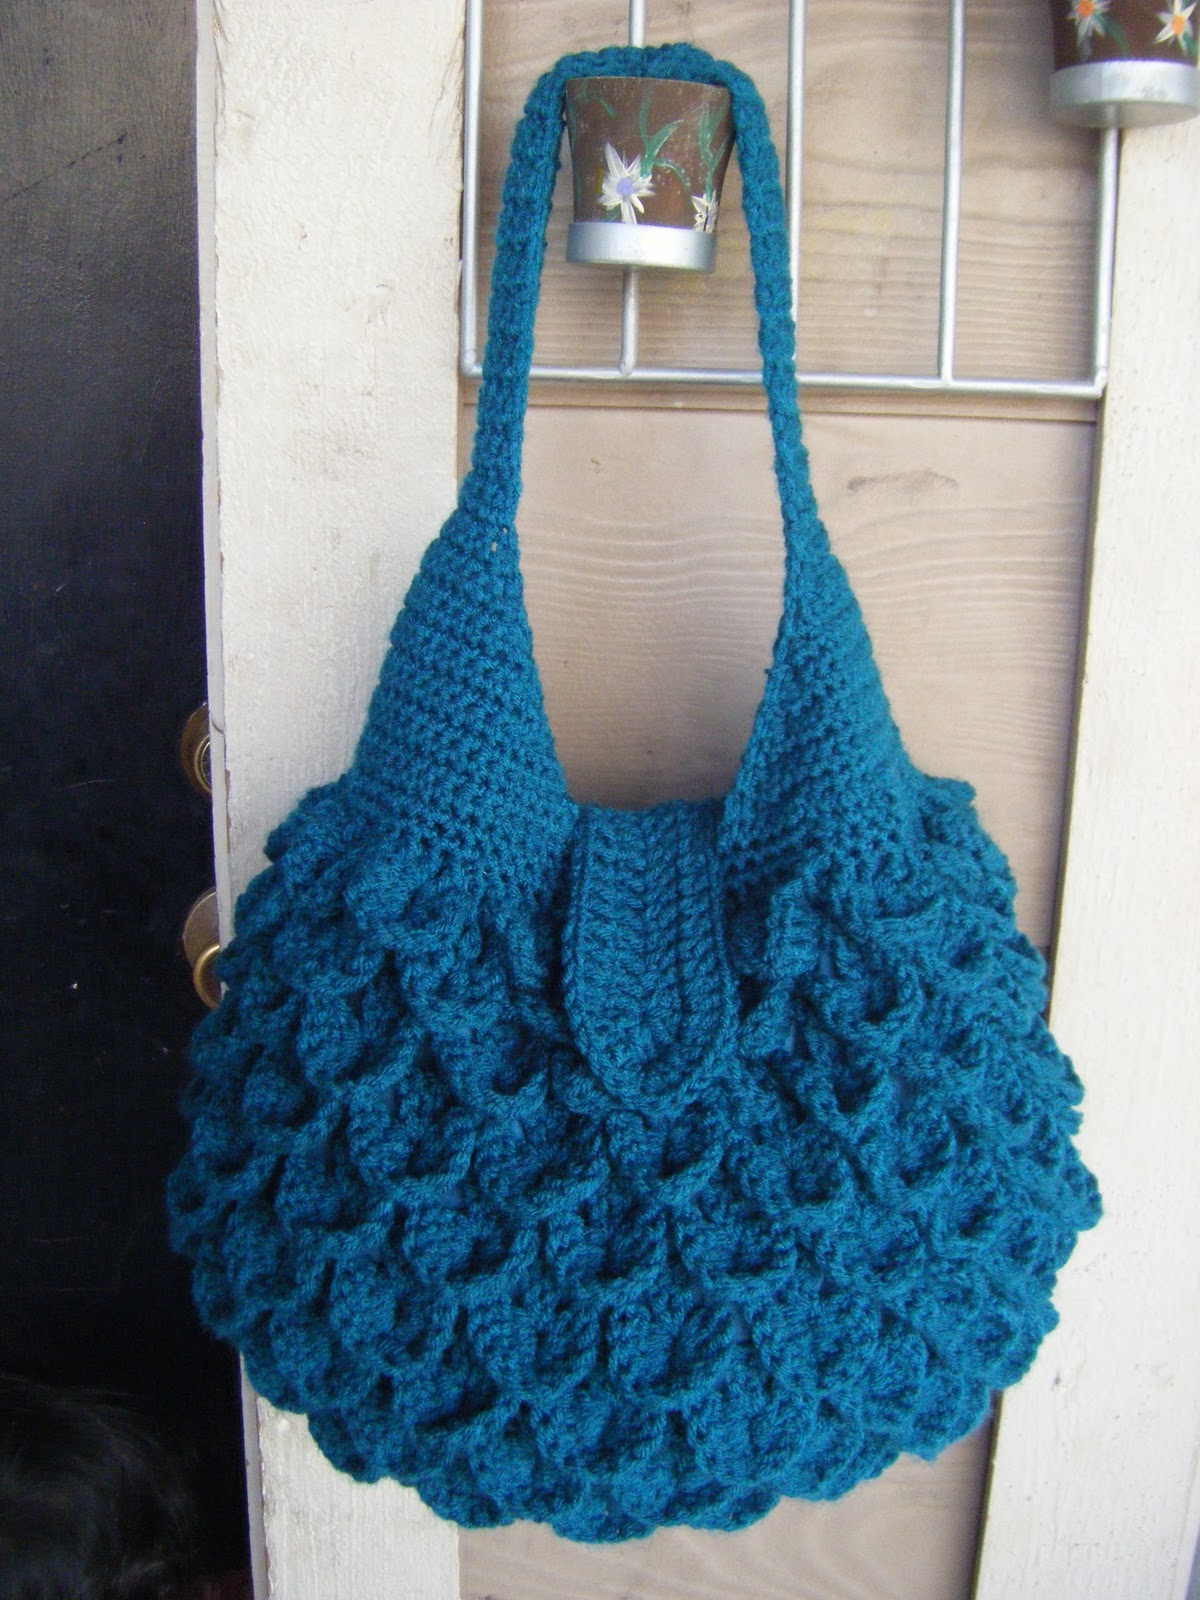 Crochet Tote Pattern Free : Free Thread Crochet Purse Pattern Learn to Crochet